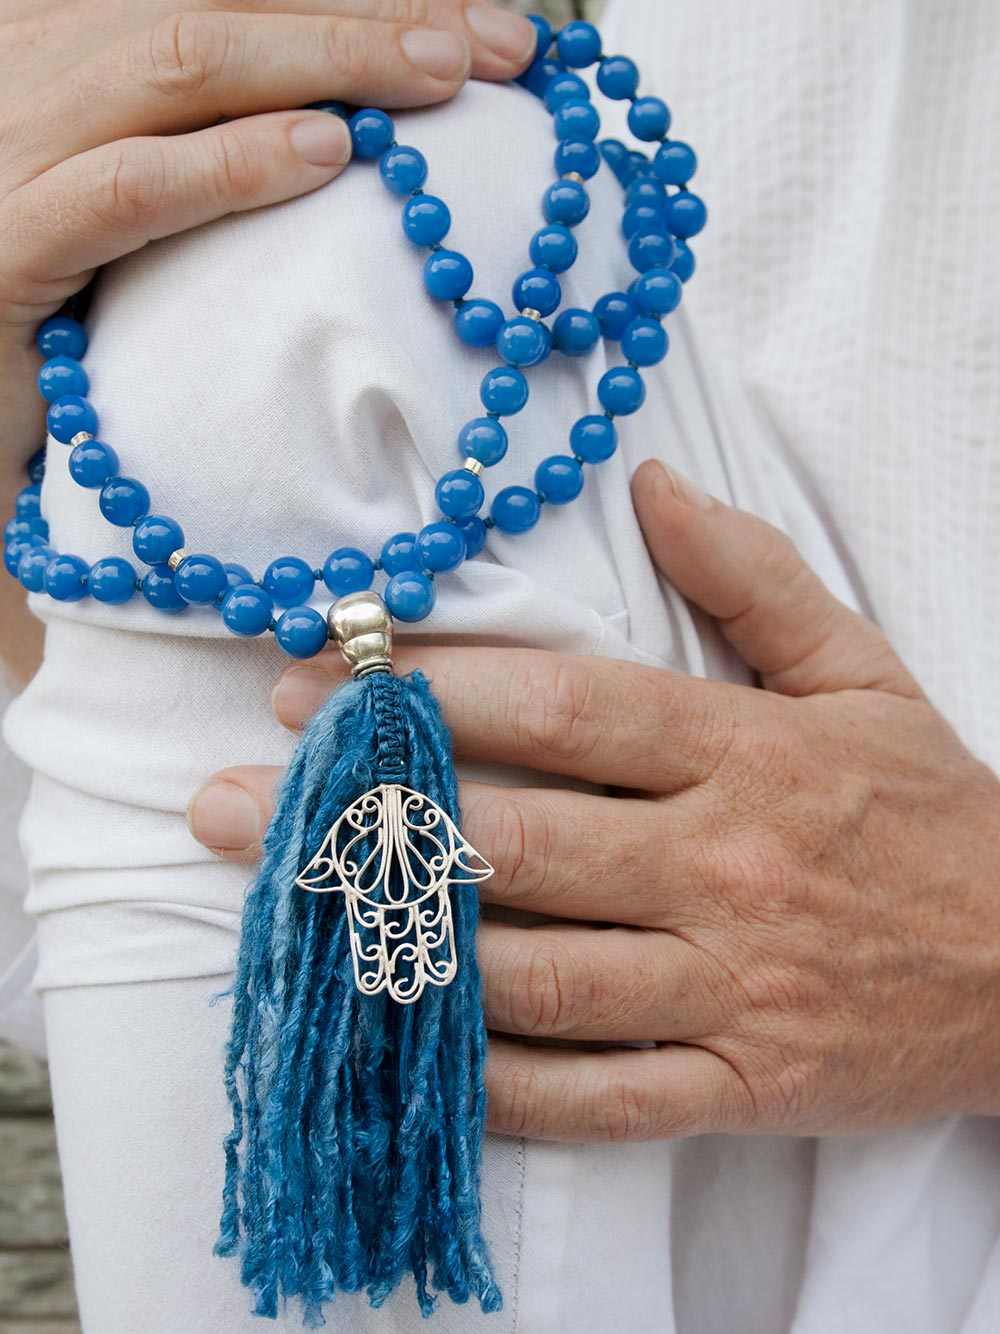 Strength Mala, in absolute blue 10mm onyx, has a 925 silver Guru and Hamsa Hand, and sari silk tassel. Hand view